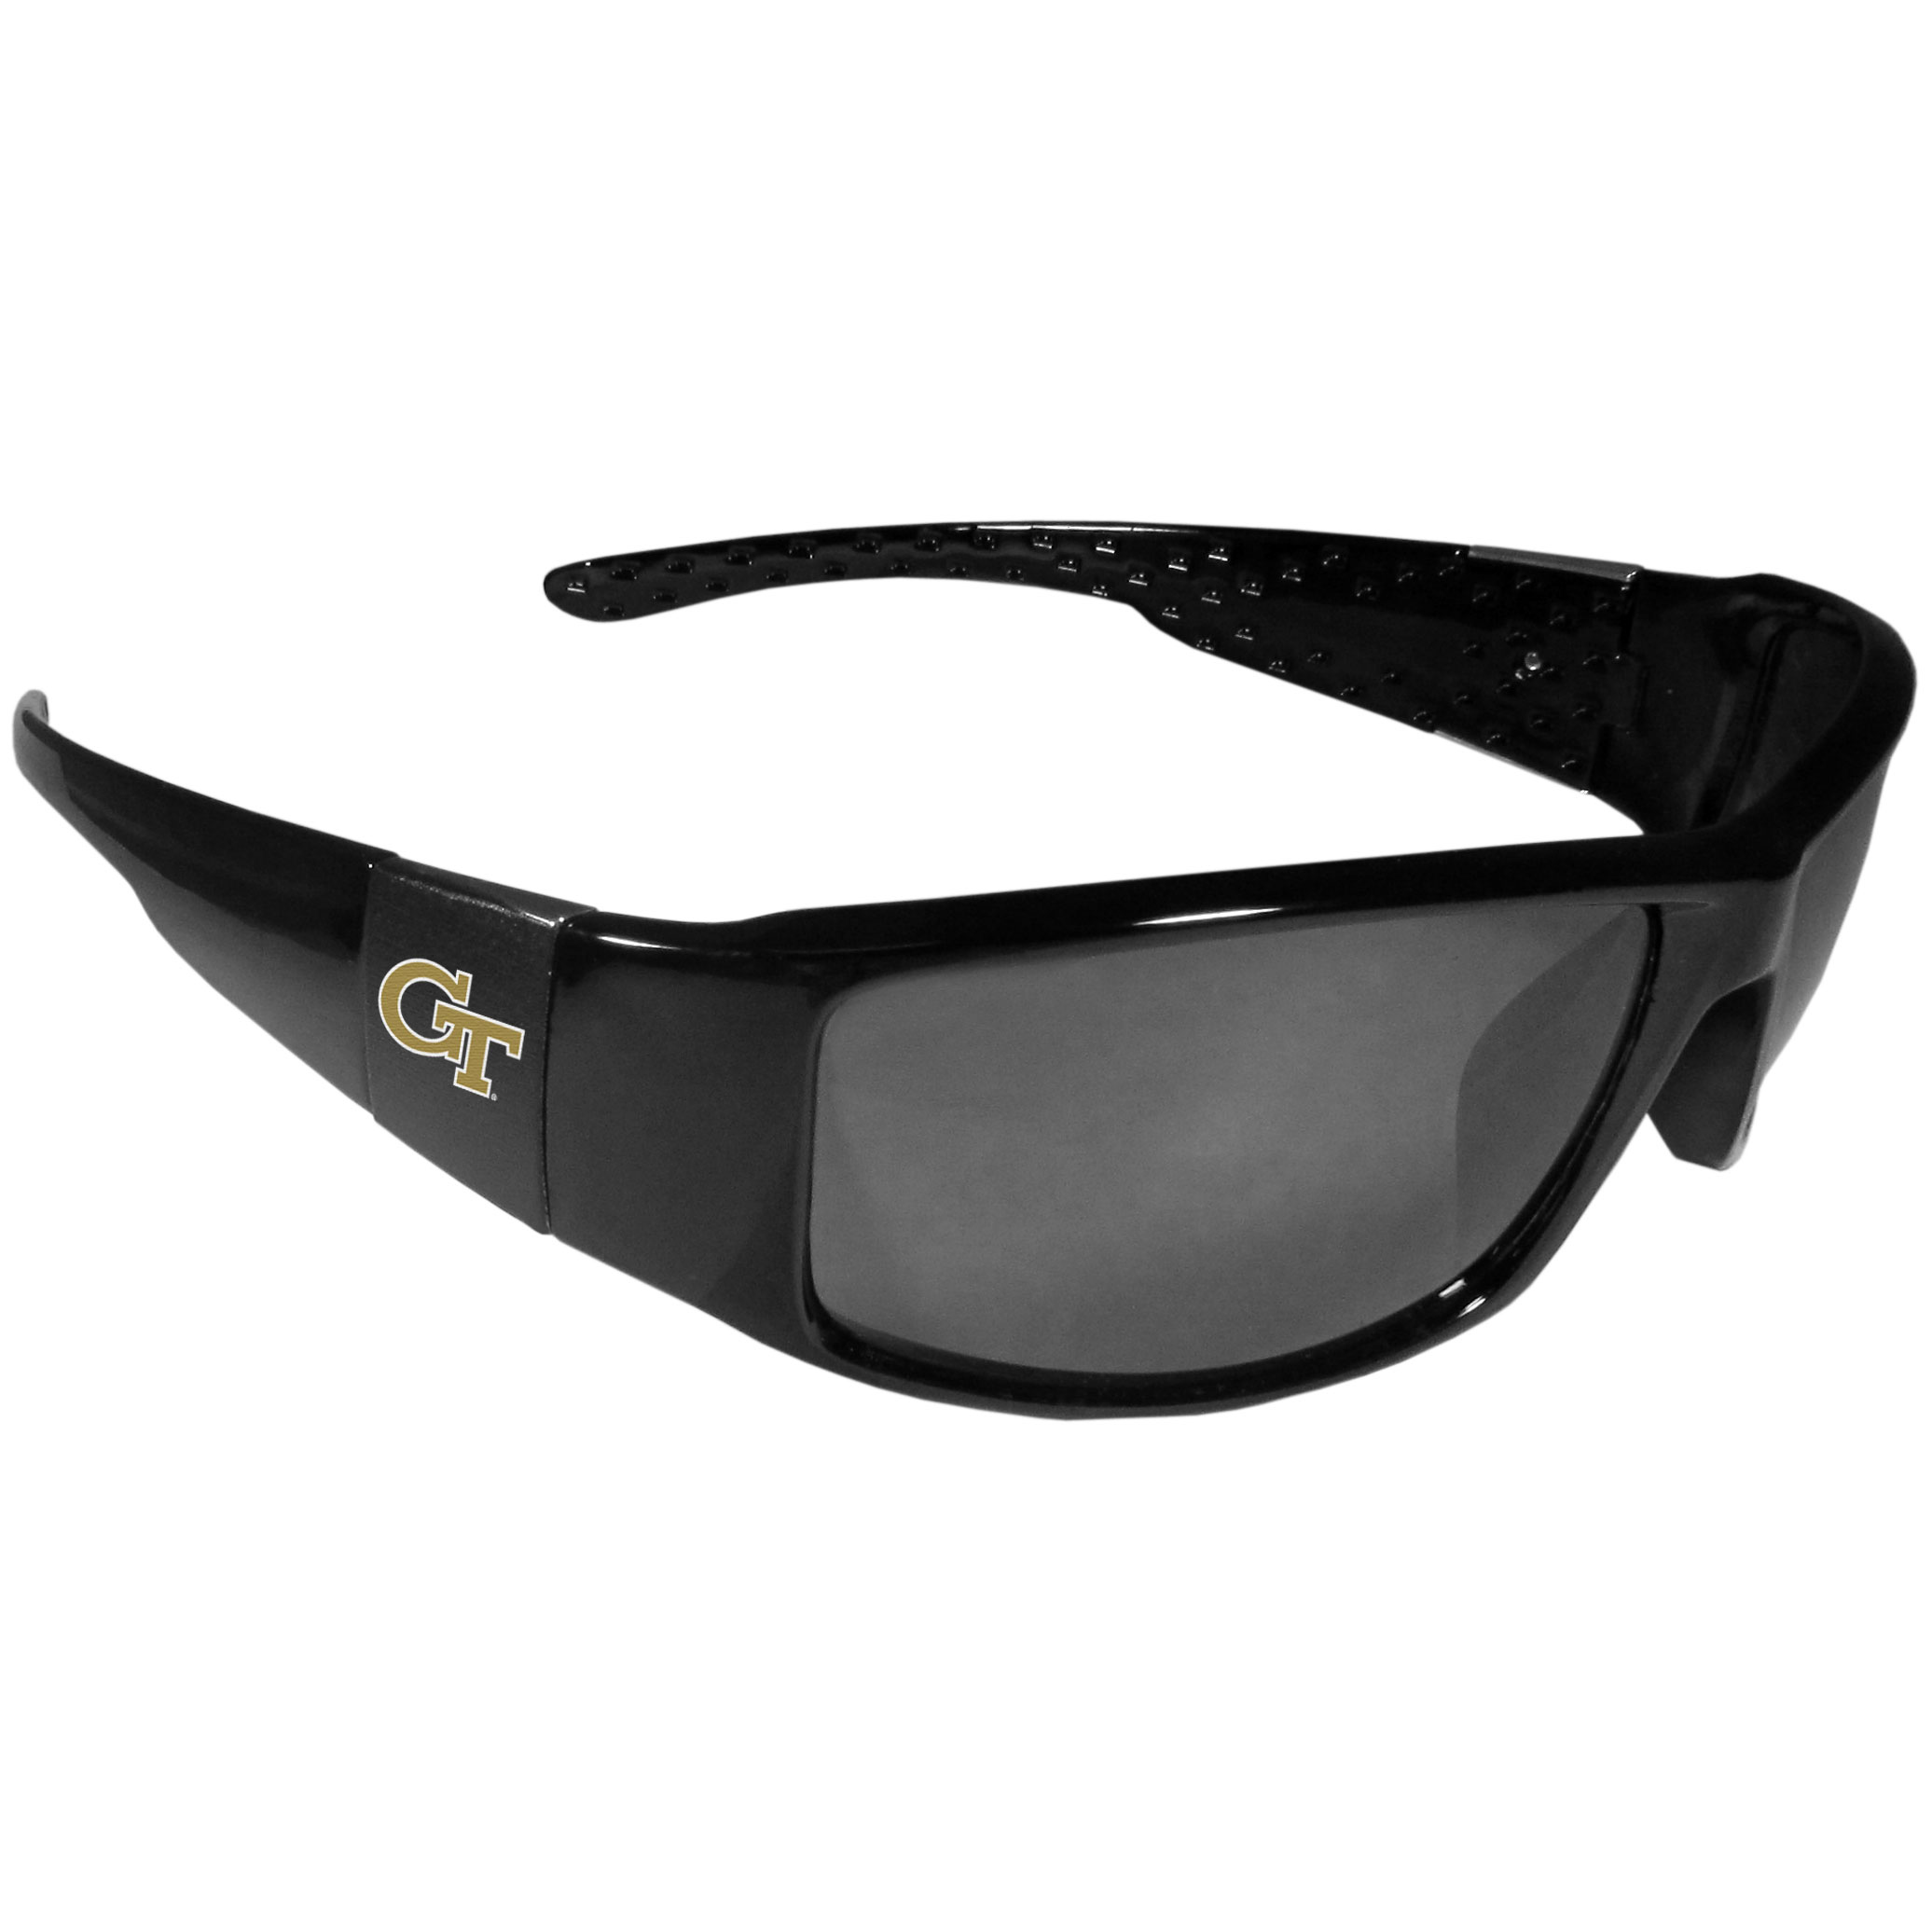 Georgia Tech Yellow Jackets Black Wrap Sunglasses - These designer inspired frames have a sleek look in all black with  Georgia Tech Yellow Jackets shields on each arm with a printed logo. The shades are perfect for any outdoor activity like; golfing, driving, hiking, fishing or cheering on the team at a tailgating event or at a home game day BBQ with a lens rating of 100% UVA/UVB for maximum UV protection. The high-quality frames are as durable as they are fashionable and with their classic look they are the perfect fan accessory that can be worn everyday for every occasion.